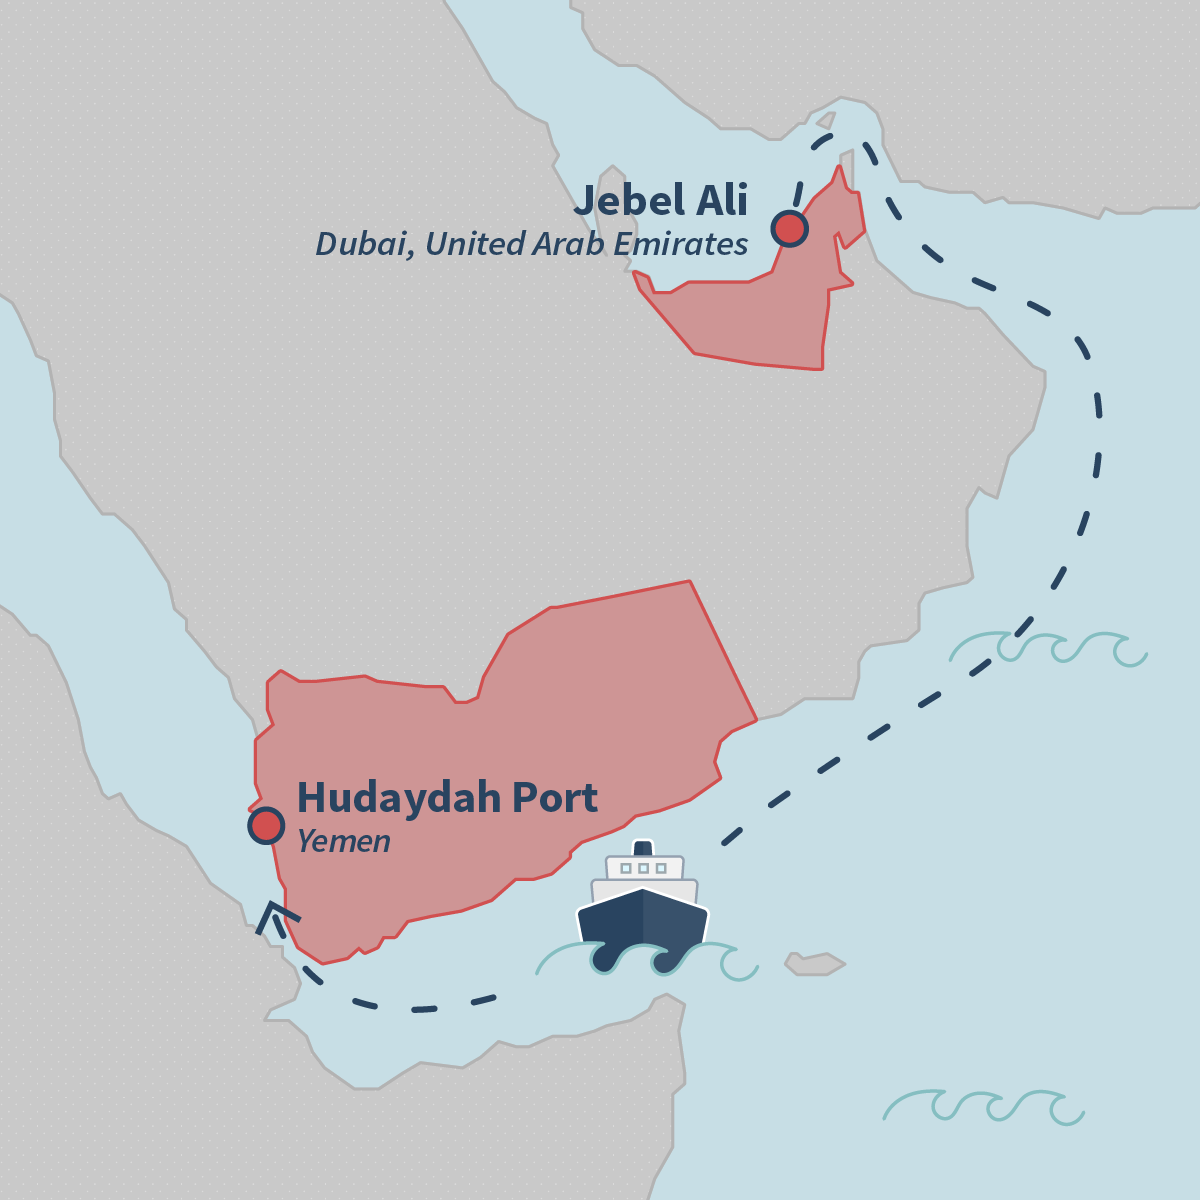 A map shows the route the ship took to deliver the cranes to Yemen.